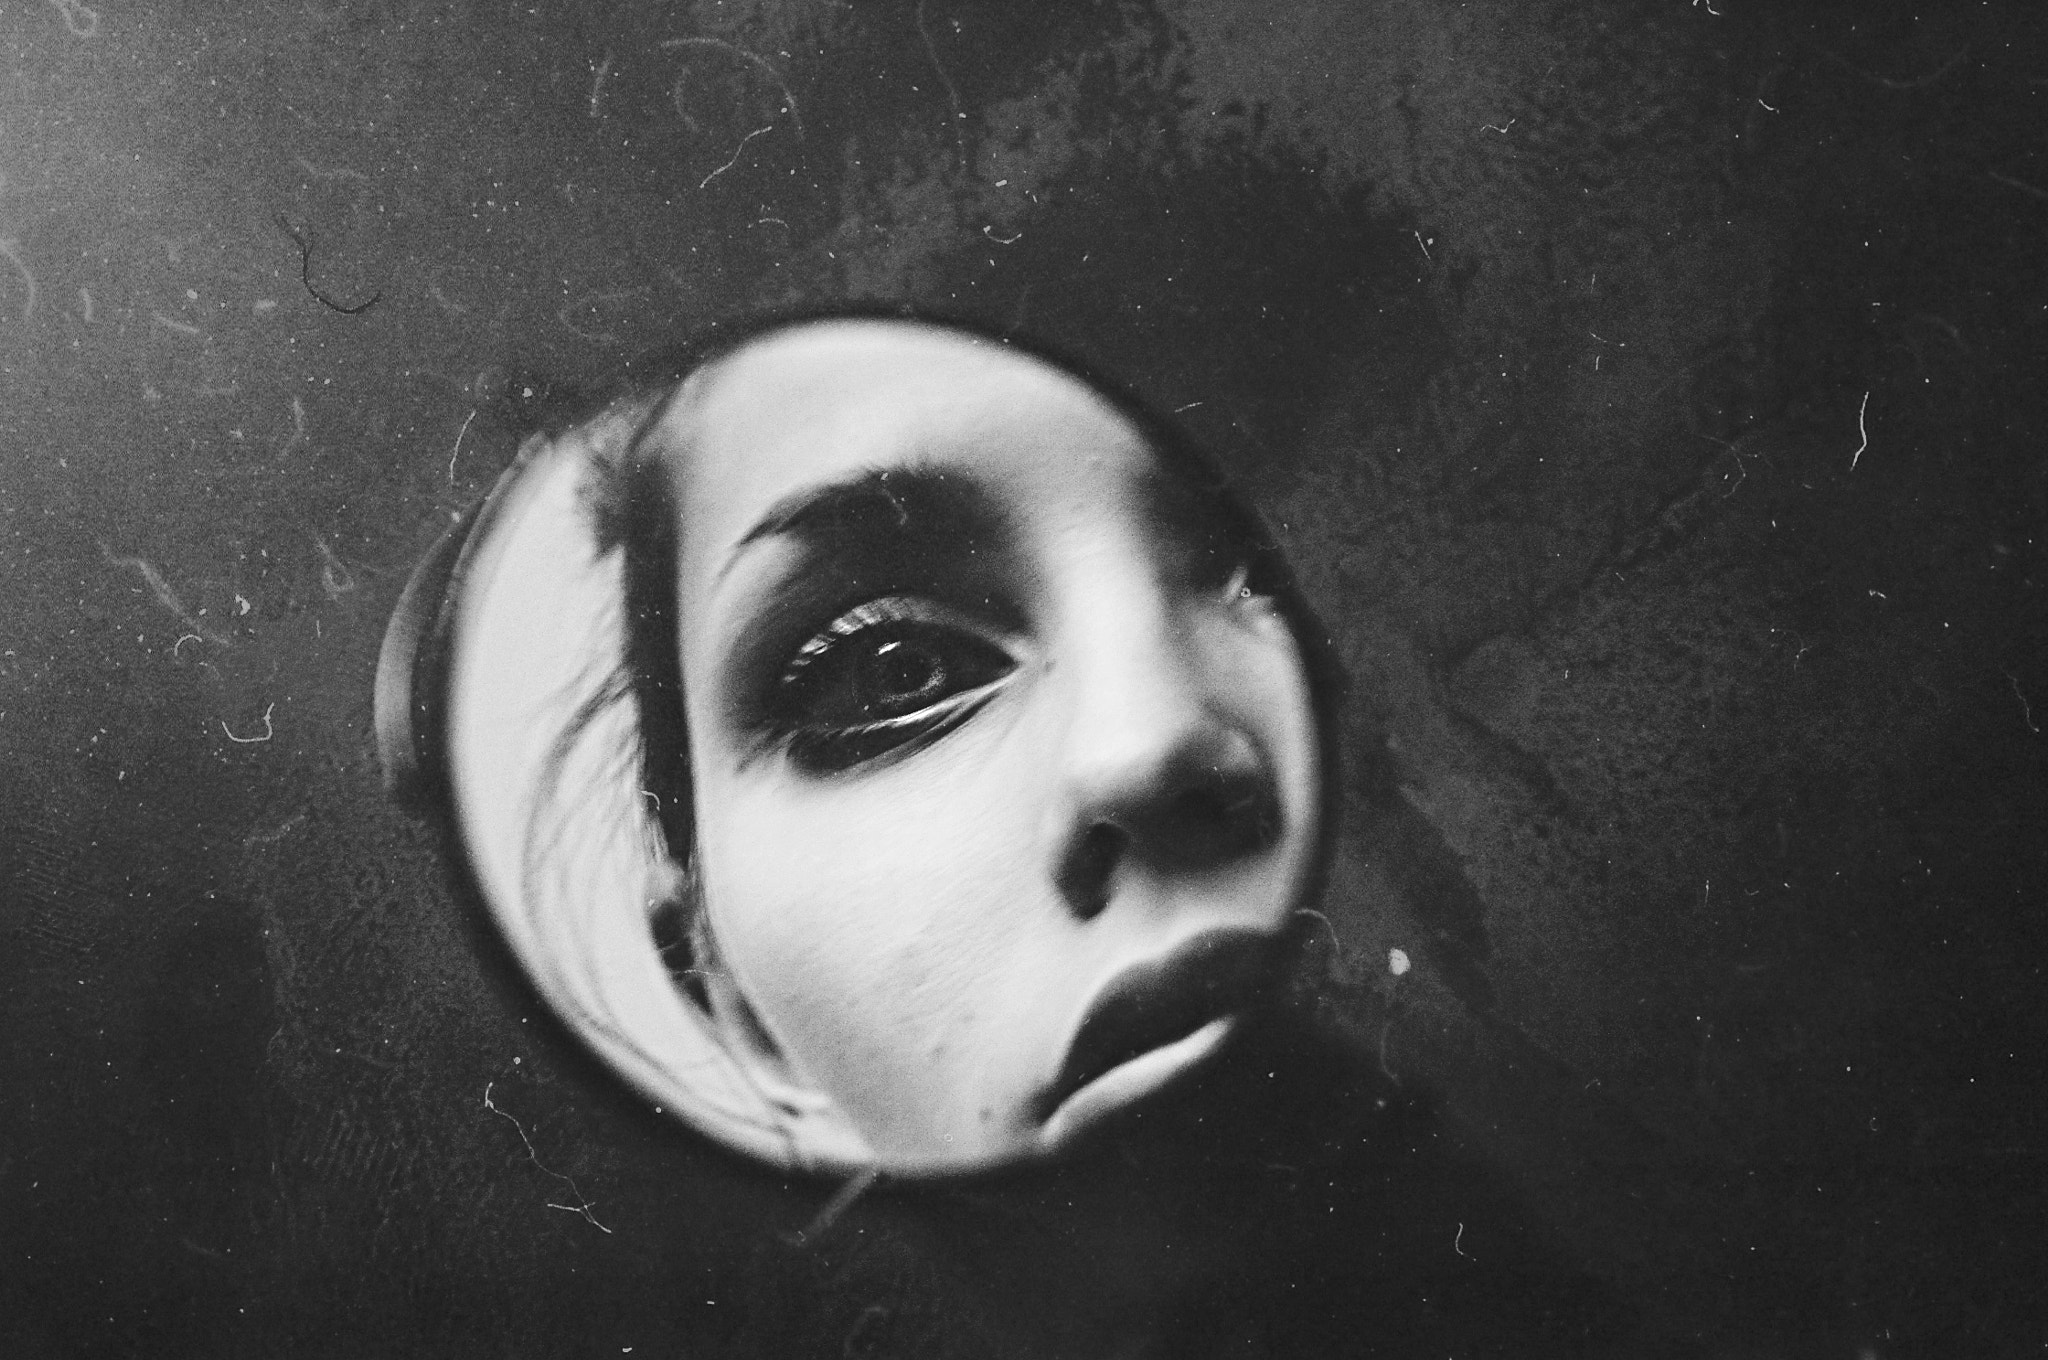 Photograph scary mirror motions by Laura Zalenga on 500px